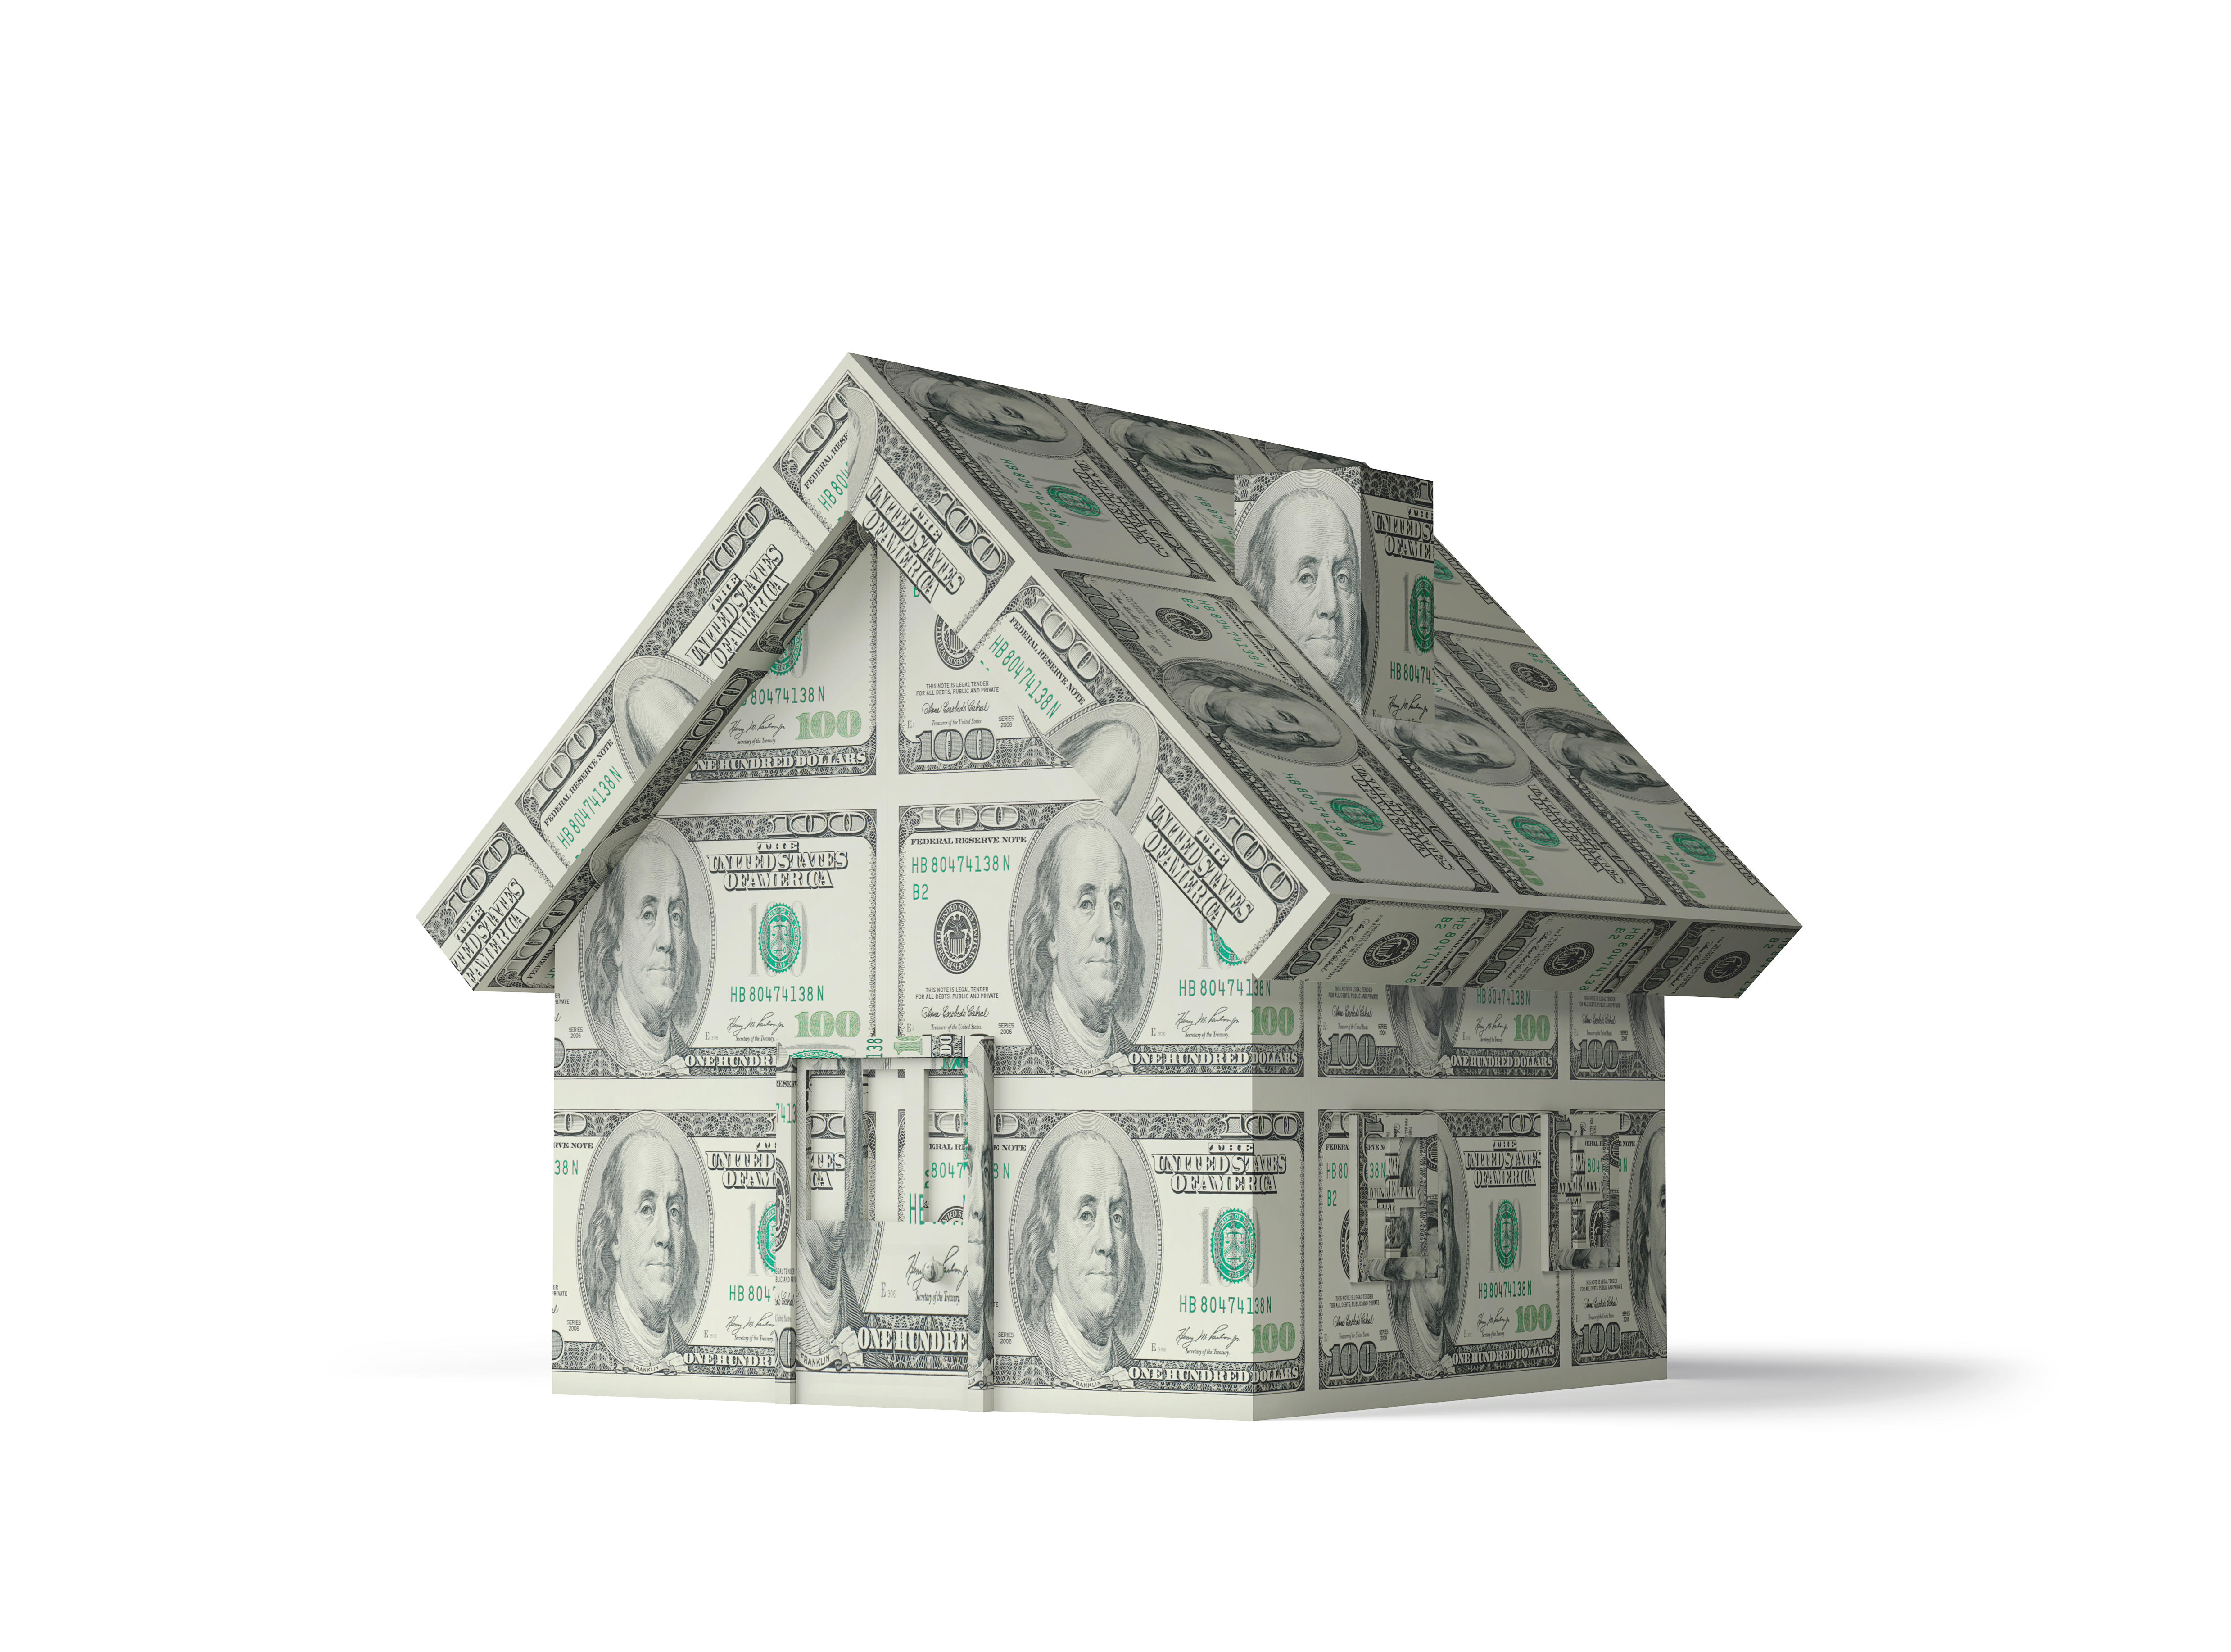 Regulatory Costs Add Nearly $94K to the Cost of a New Single-family Home